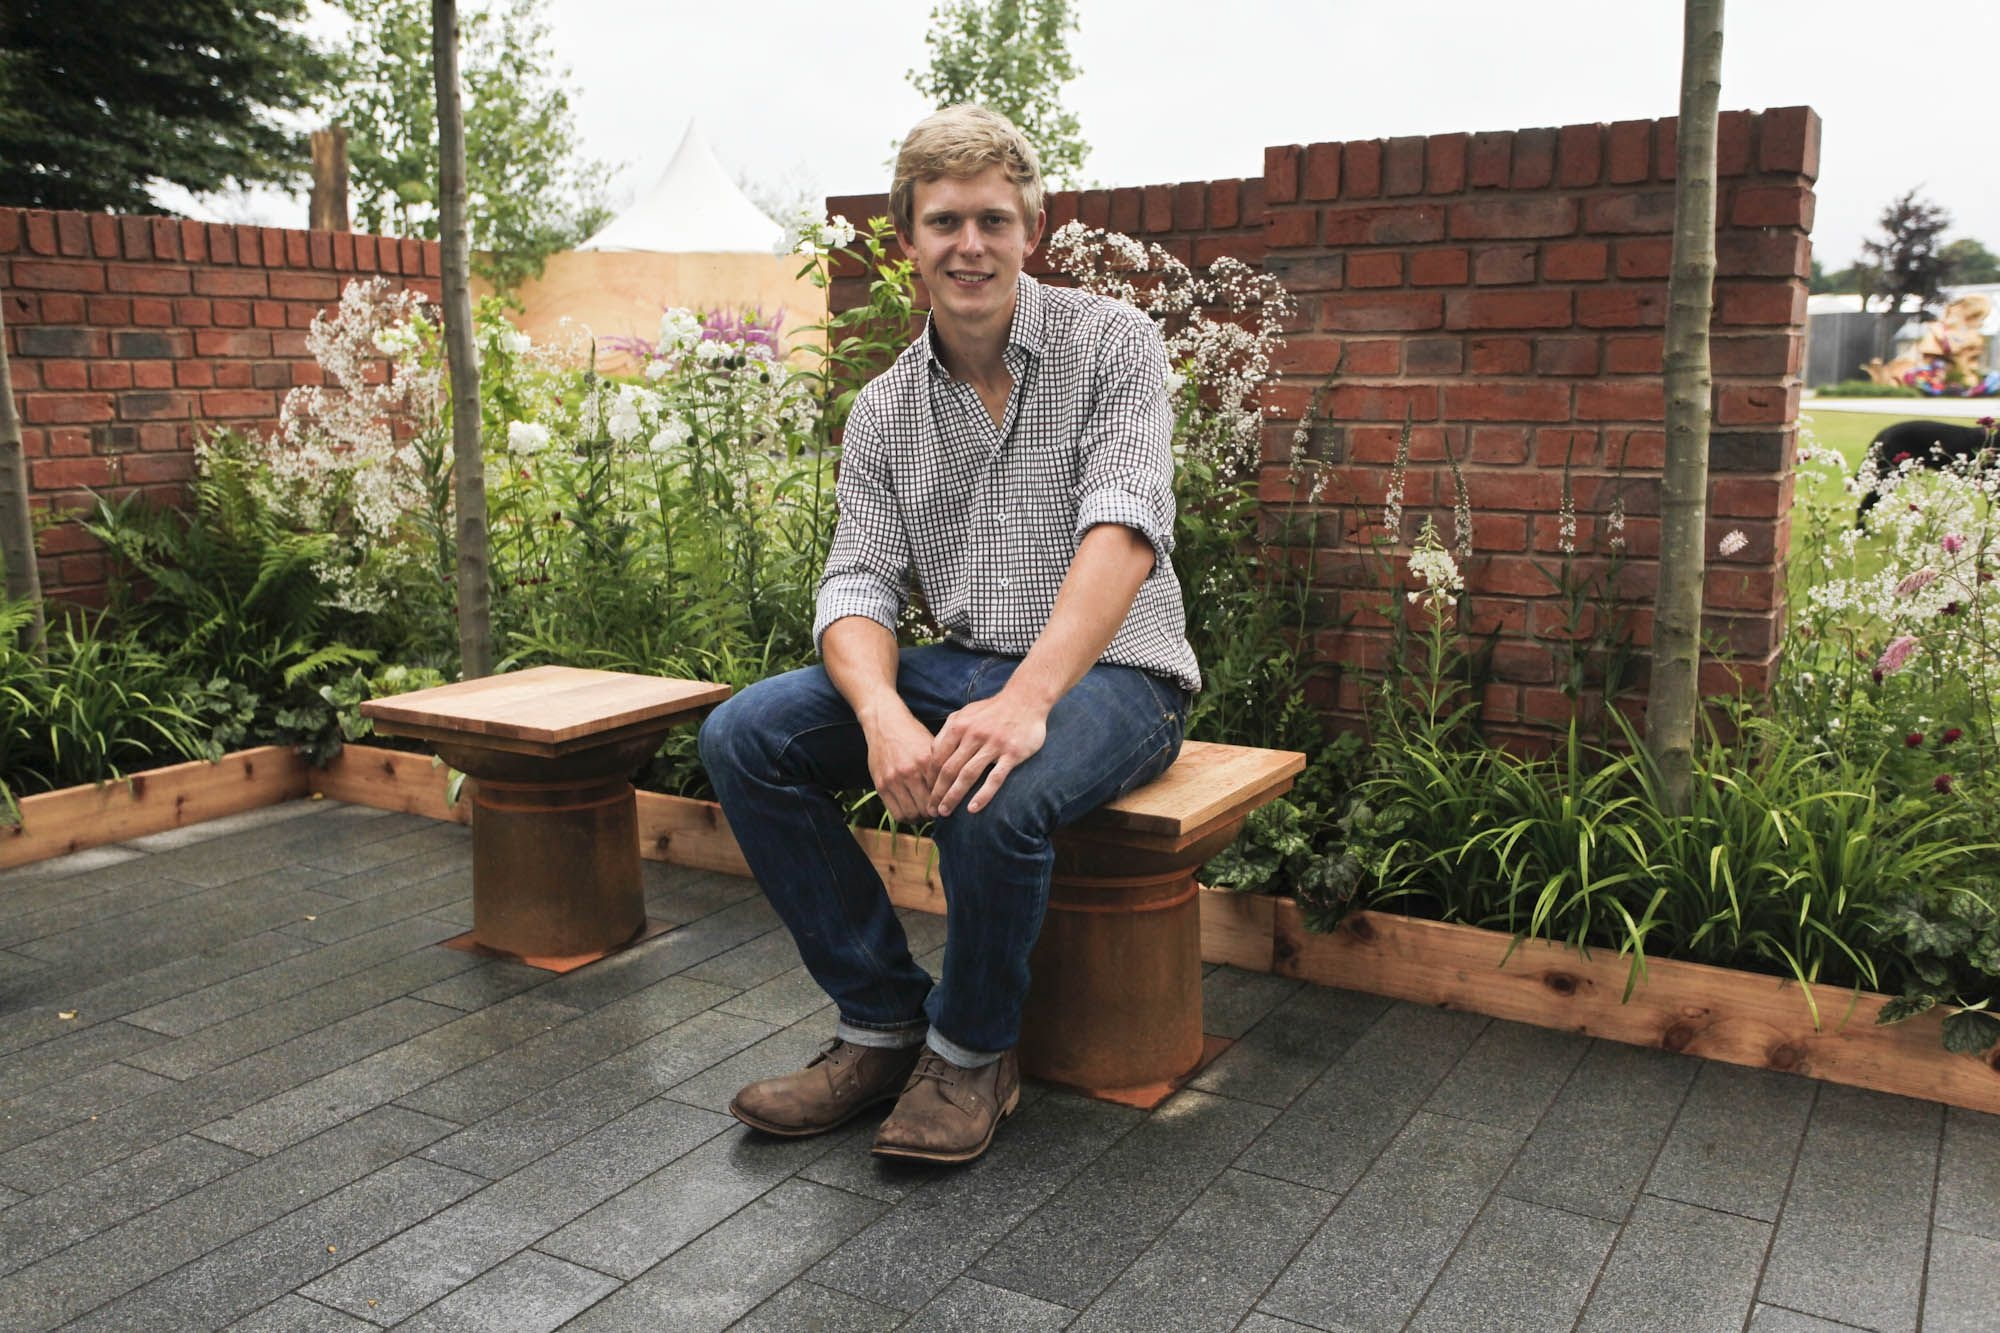 Former West Dorset student scoops gold at RHS Chelsea Flower Show